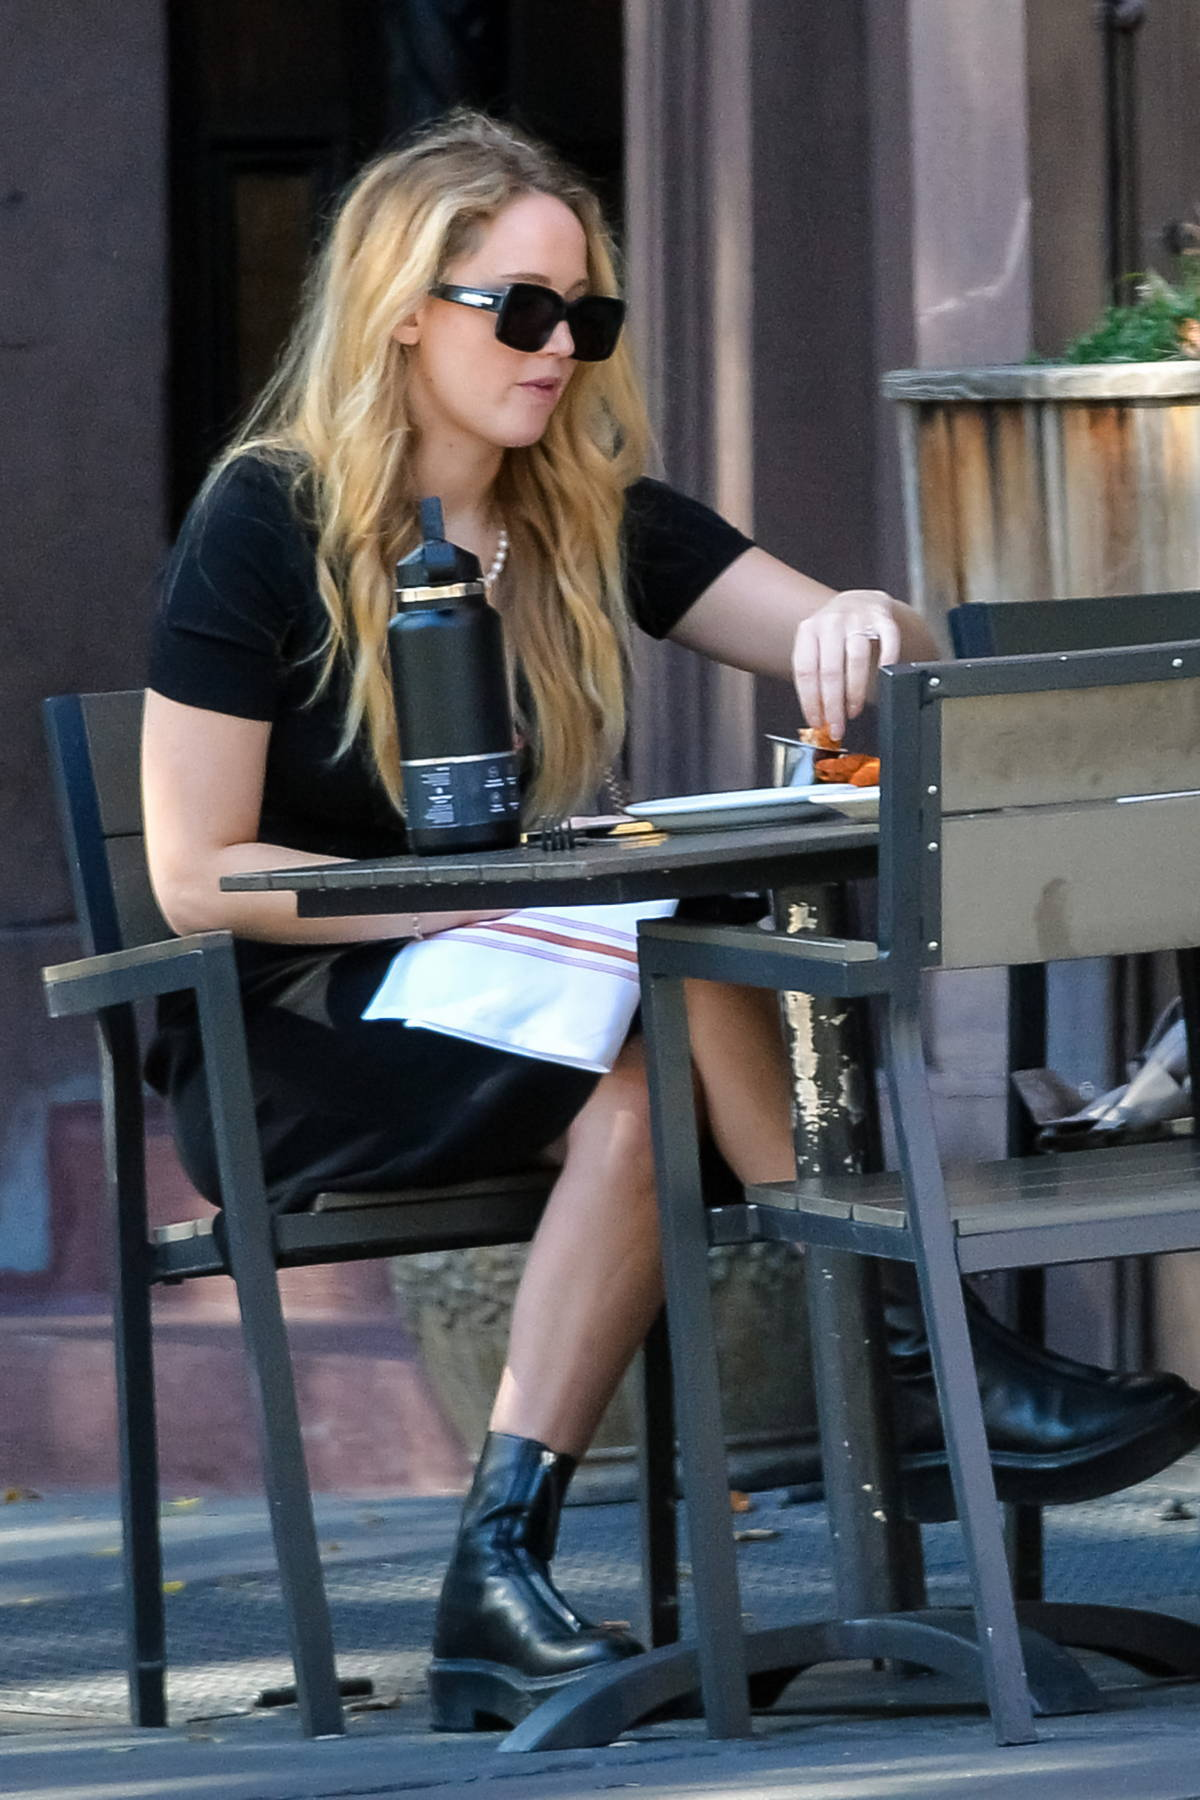 Jennifer Lawrence and Cooke Maroney spotted while enjoying an alfresco lunch date in New York City